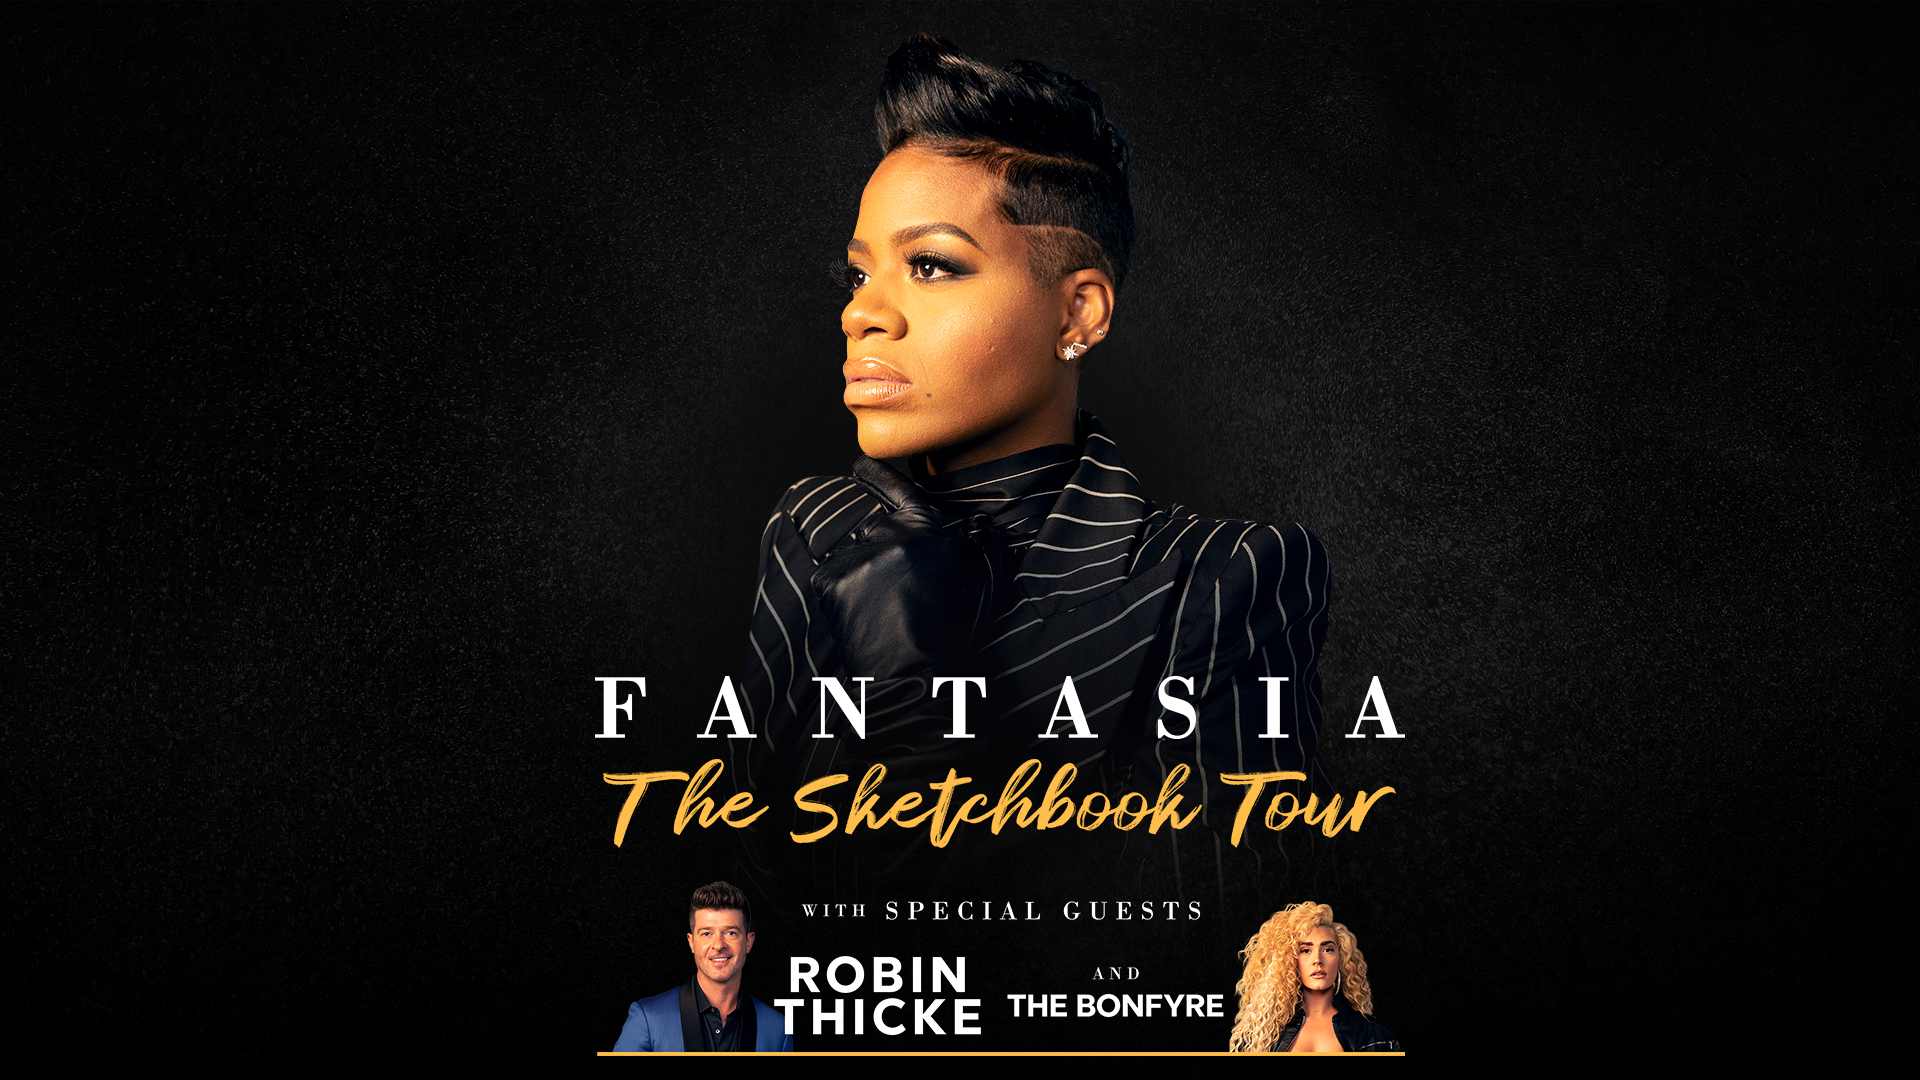 Fantasia Sketchbook Tour